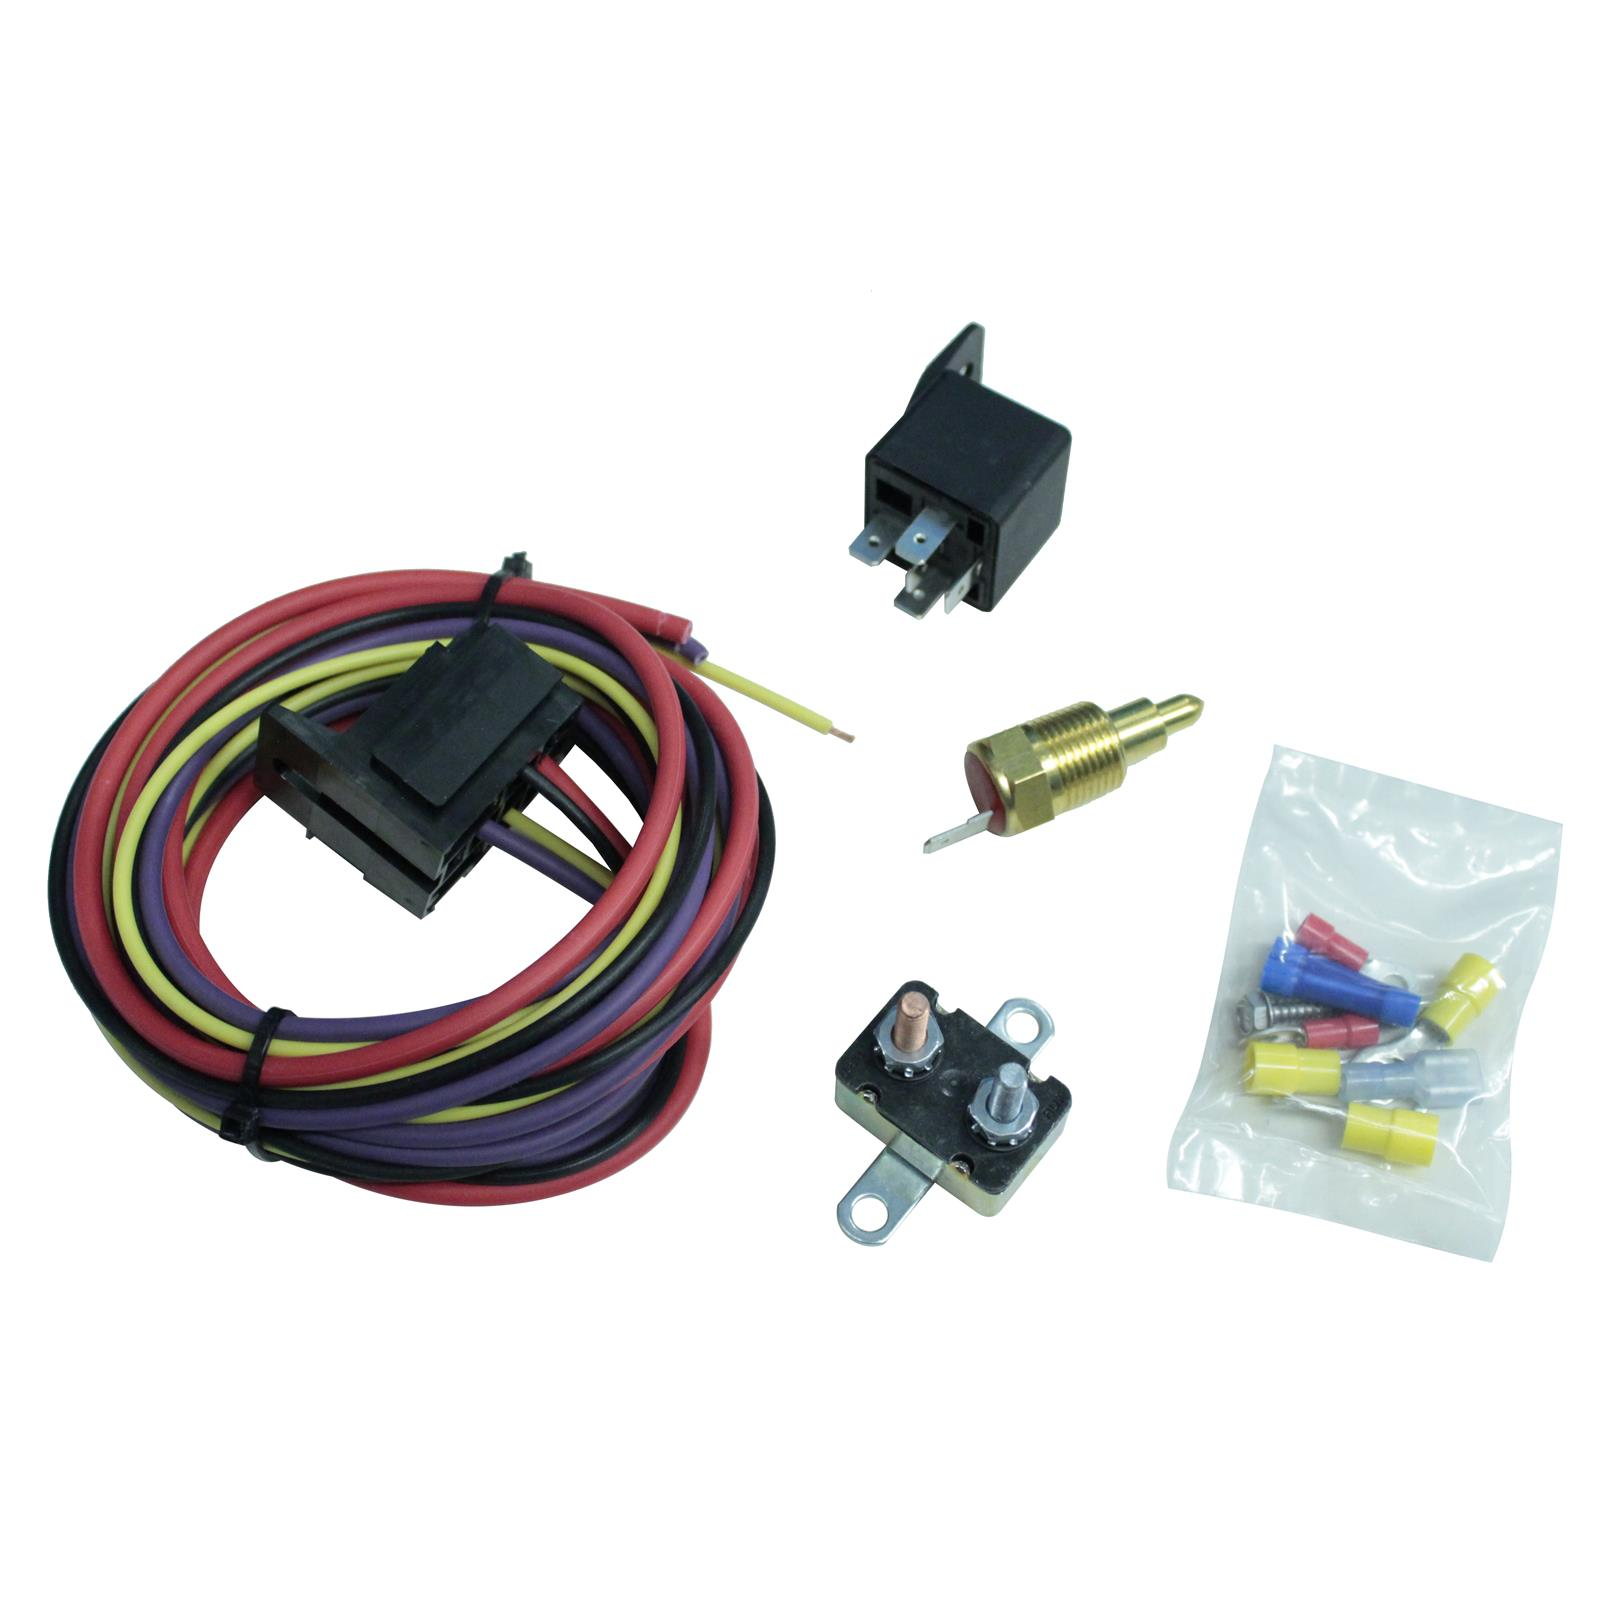 hight resolution of summit racing electric fan thermostat kits sum 890115 free shipping on orders over 99 at summit racing